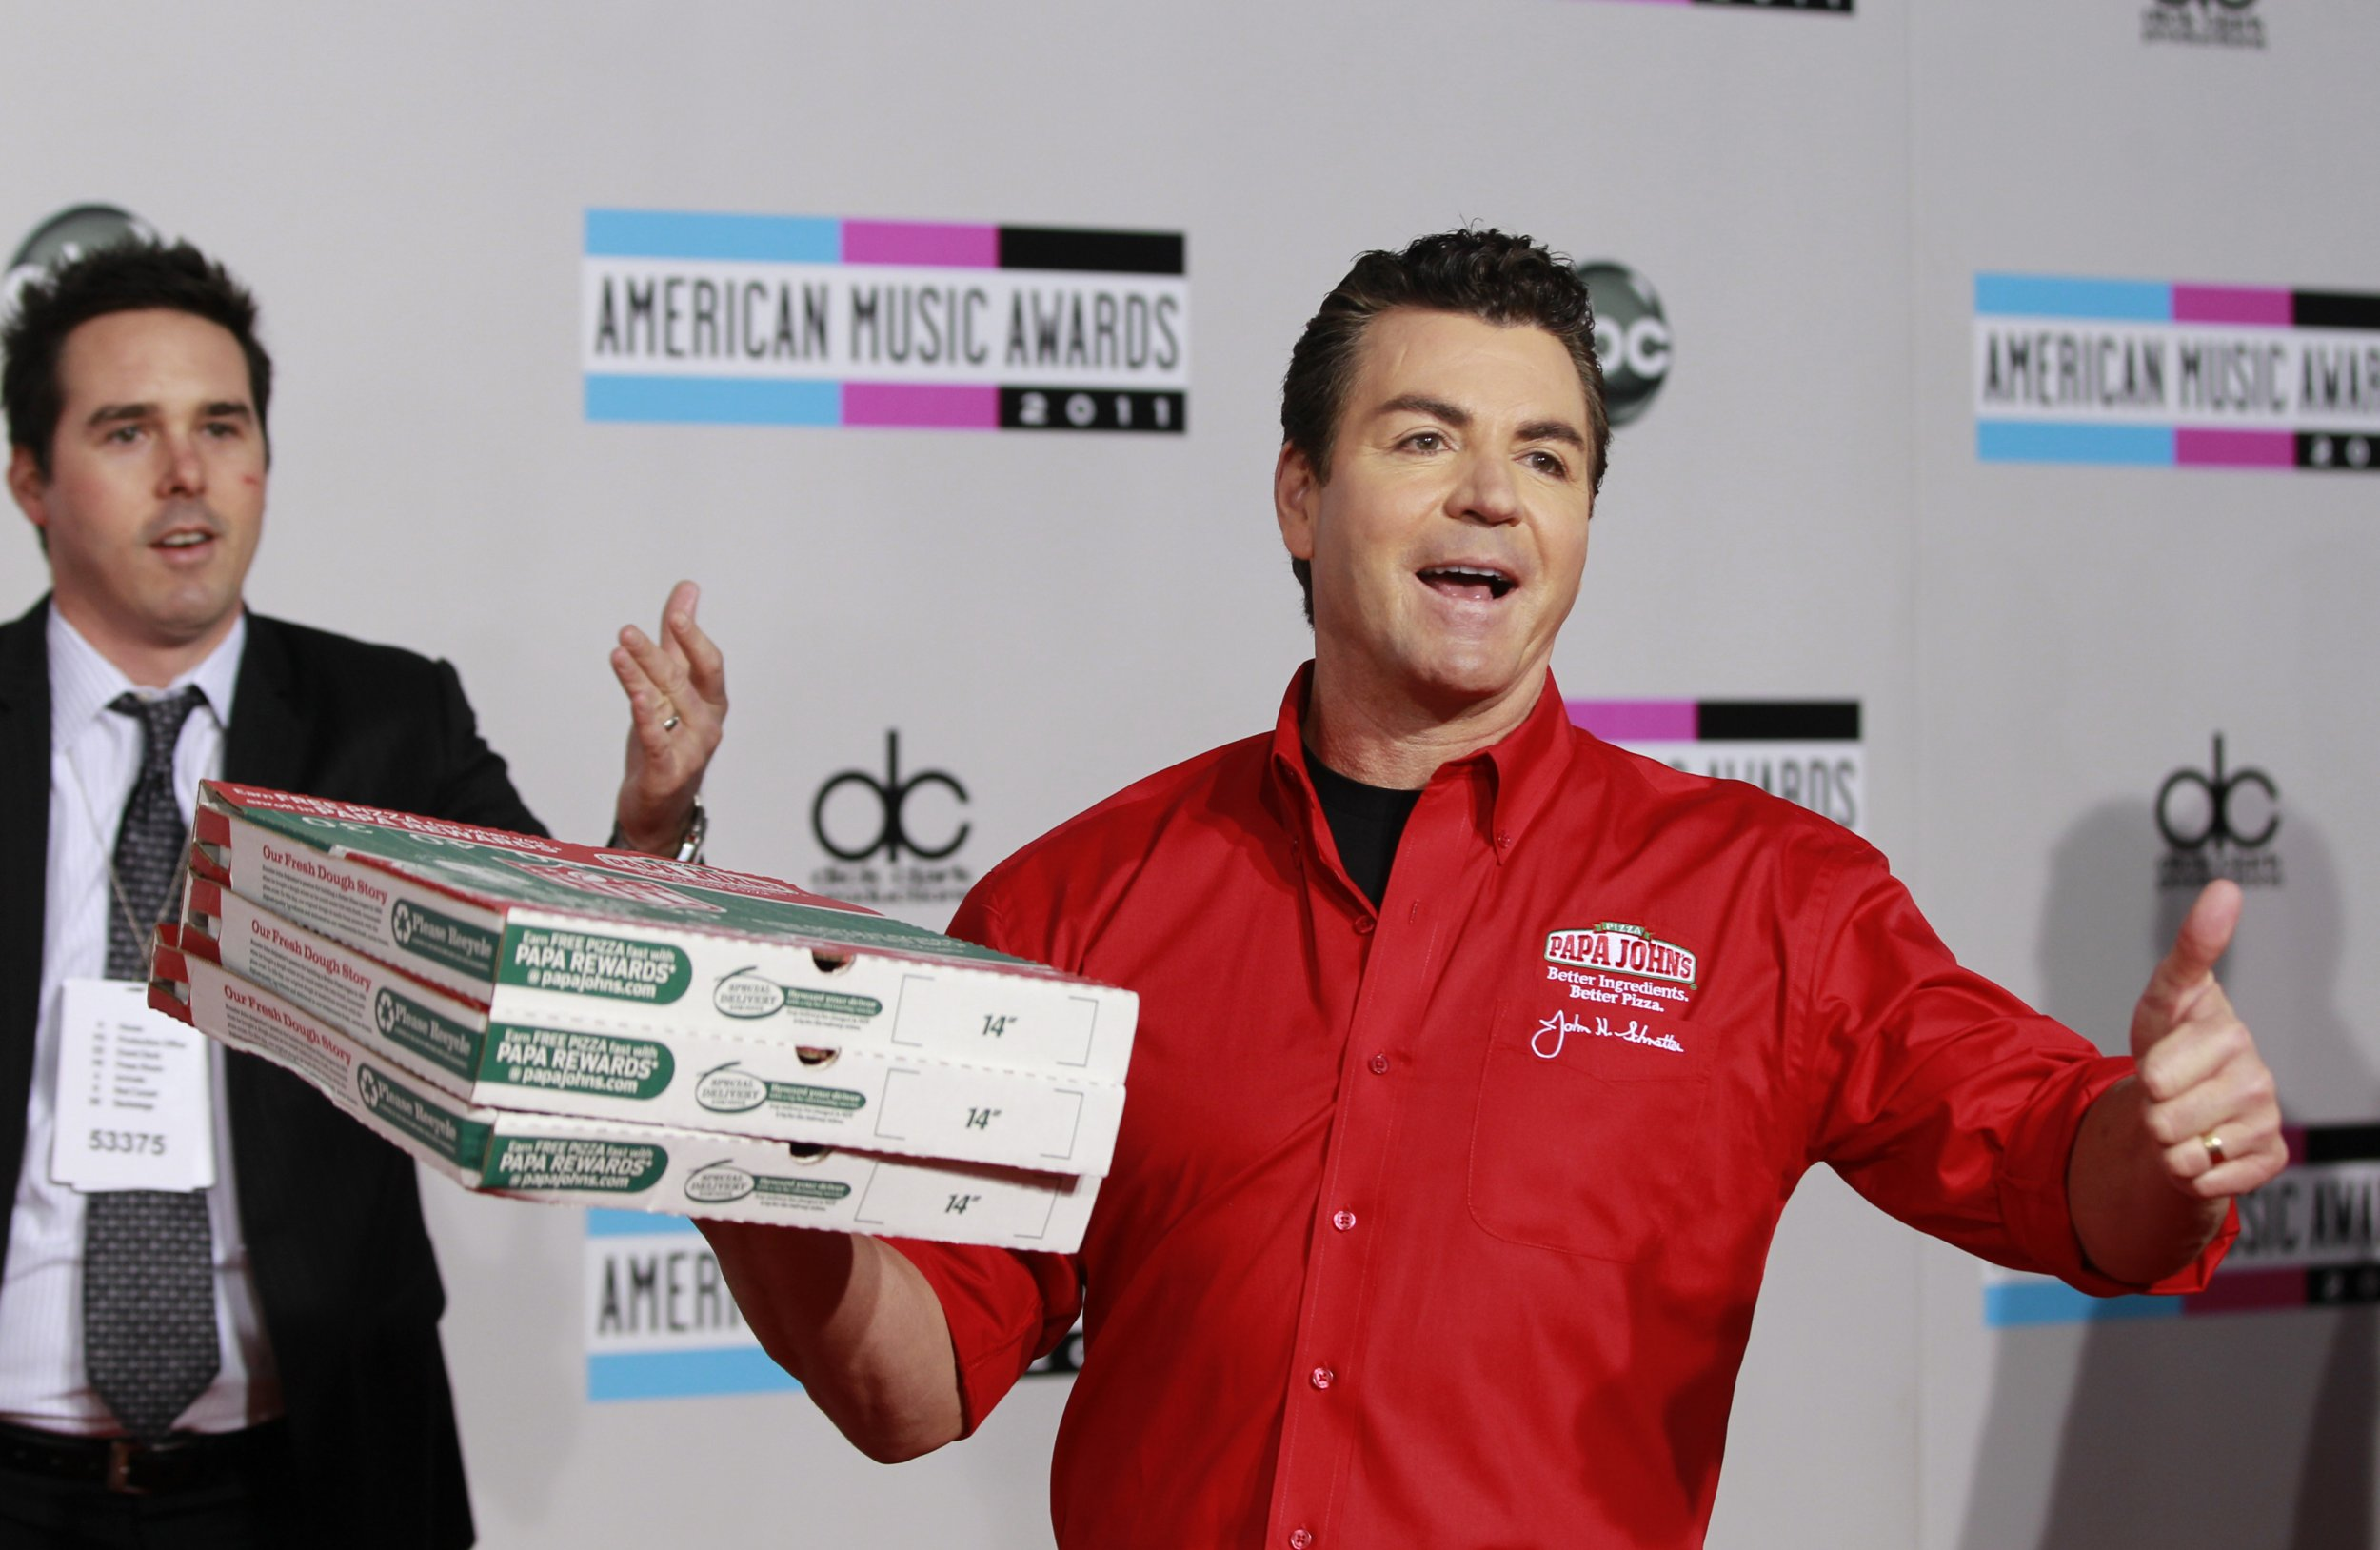 Papa John's Just Gave the Middle Finger to the Alt-Right After Being